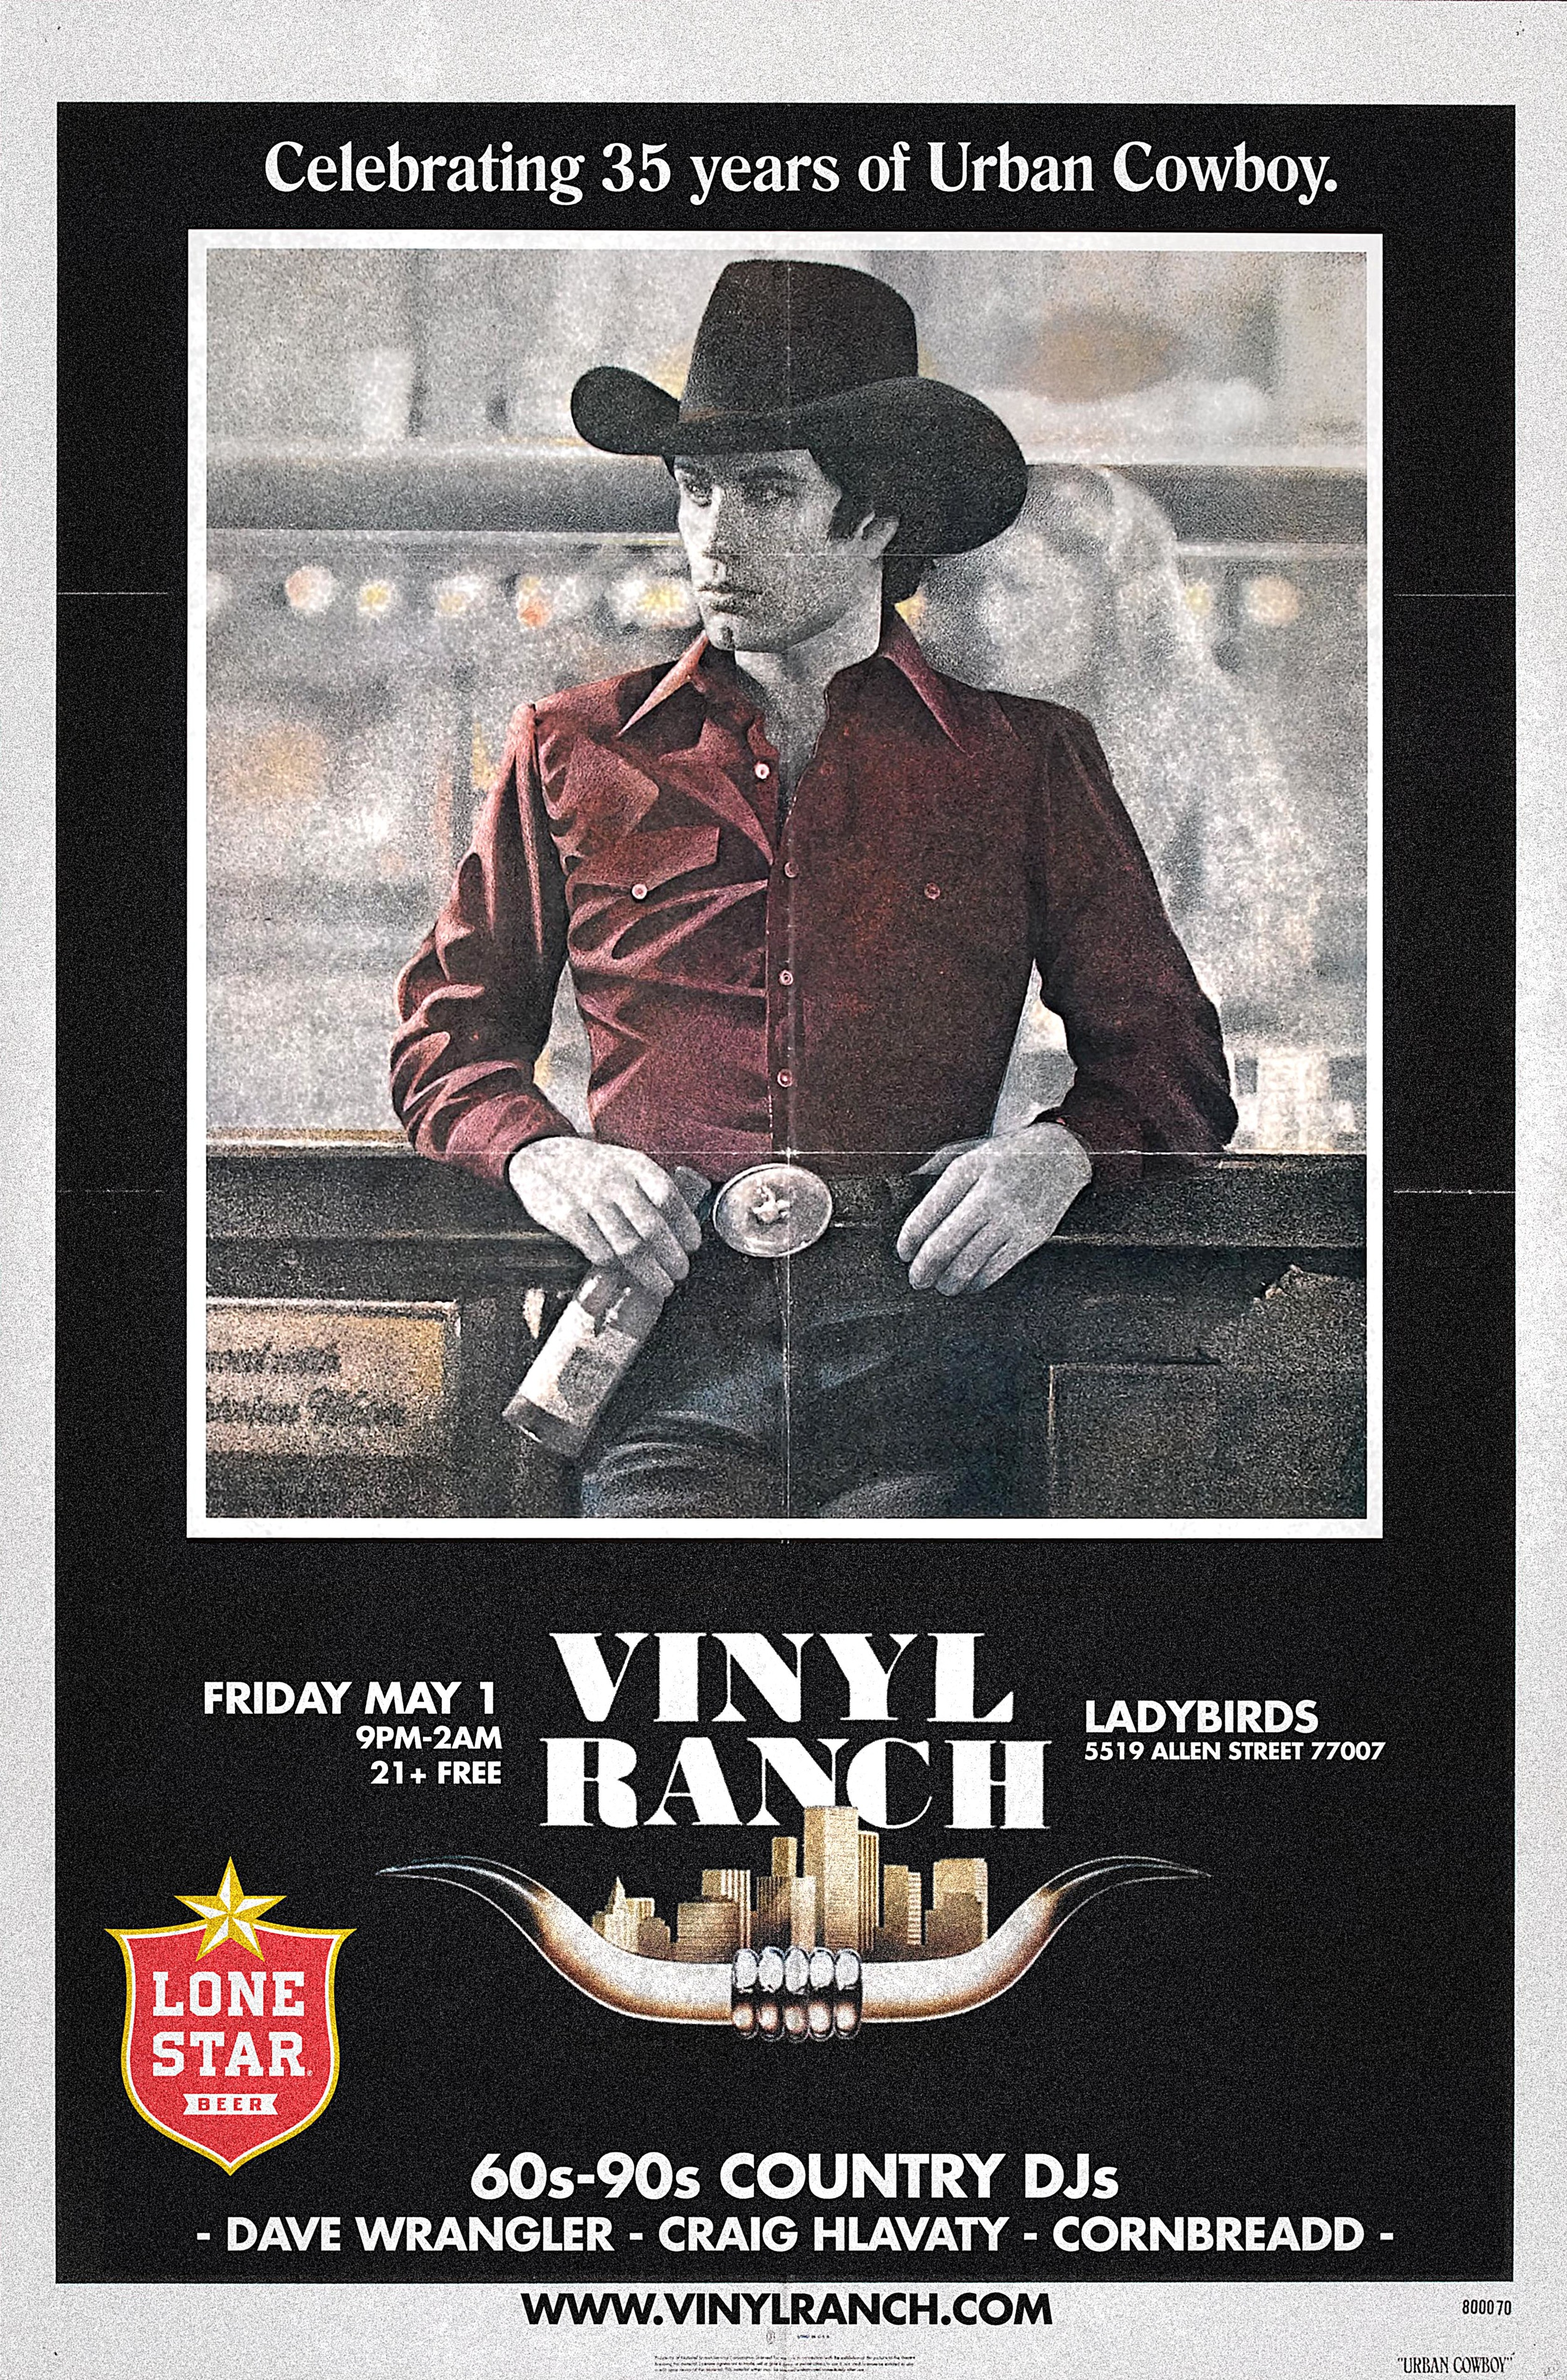 vinyl-ranch-urban-cowboy_MAY_1_11x17.jpg